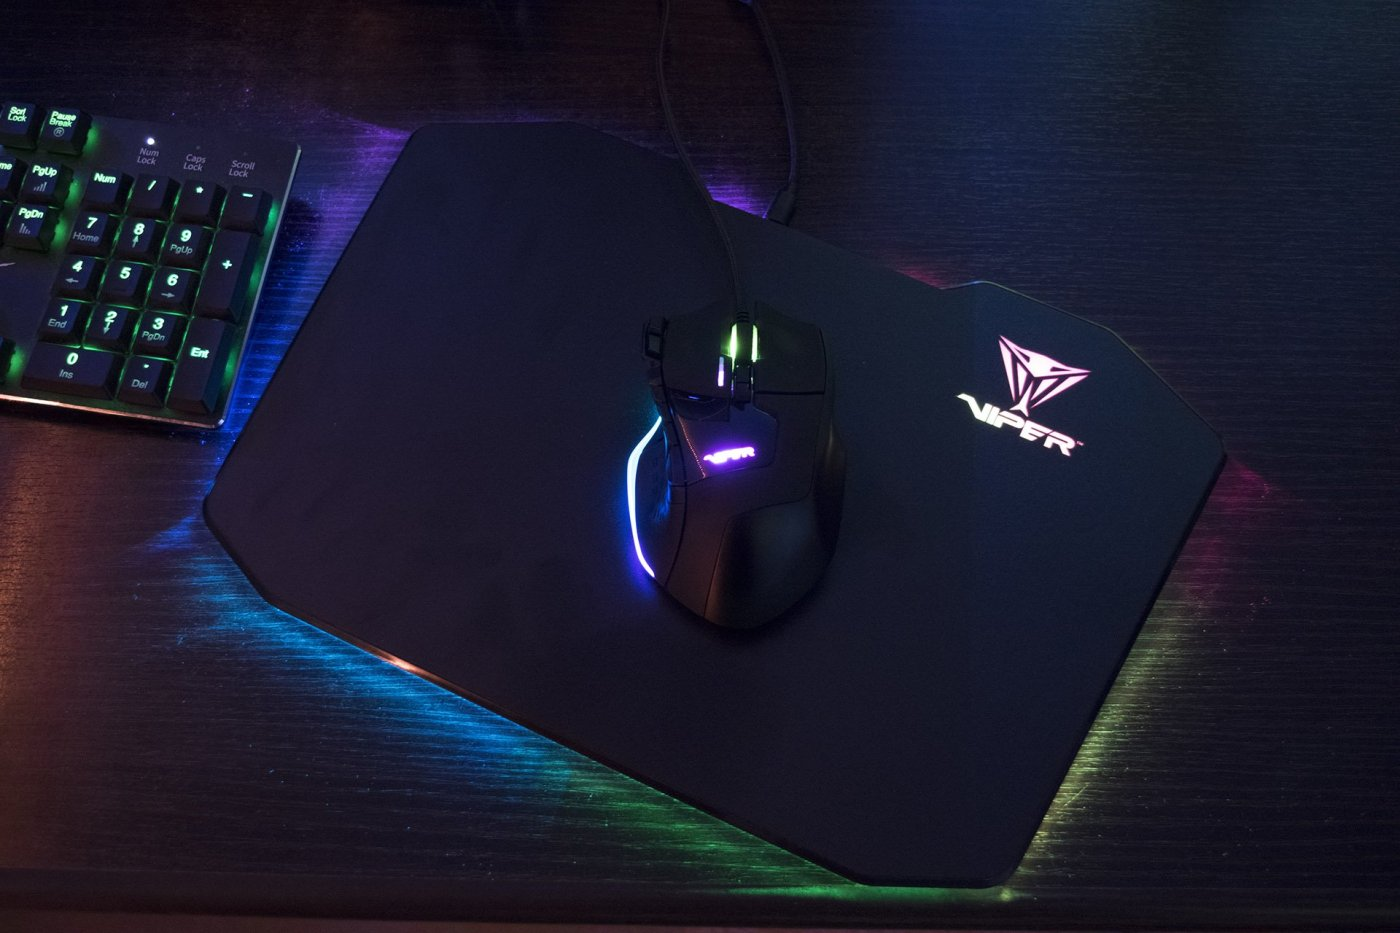 Viper Gaming V570 Mouse & Mouse Pad